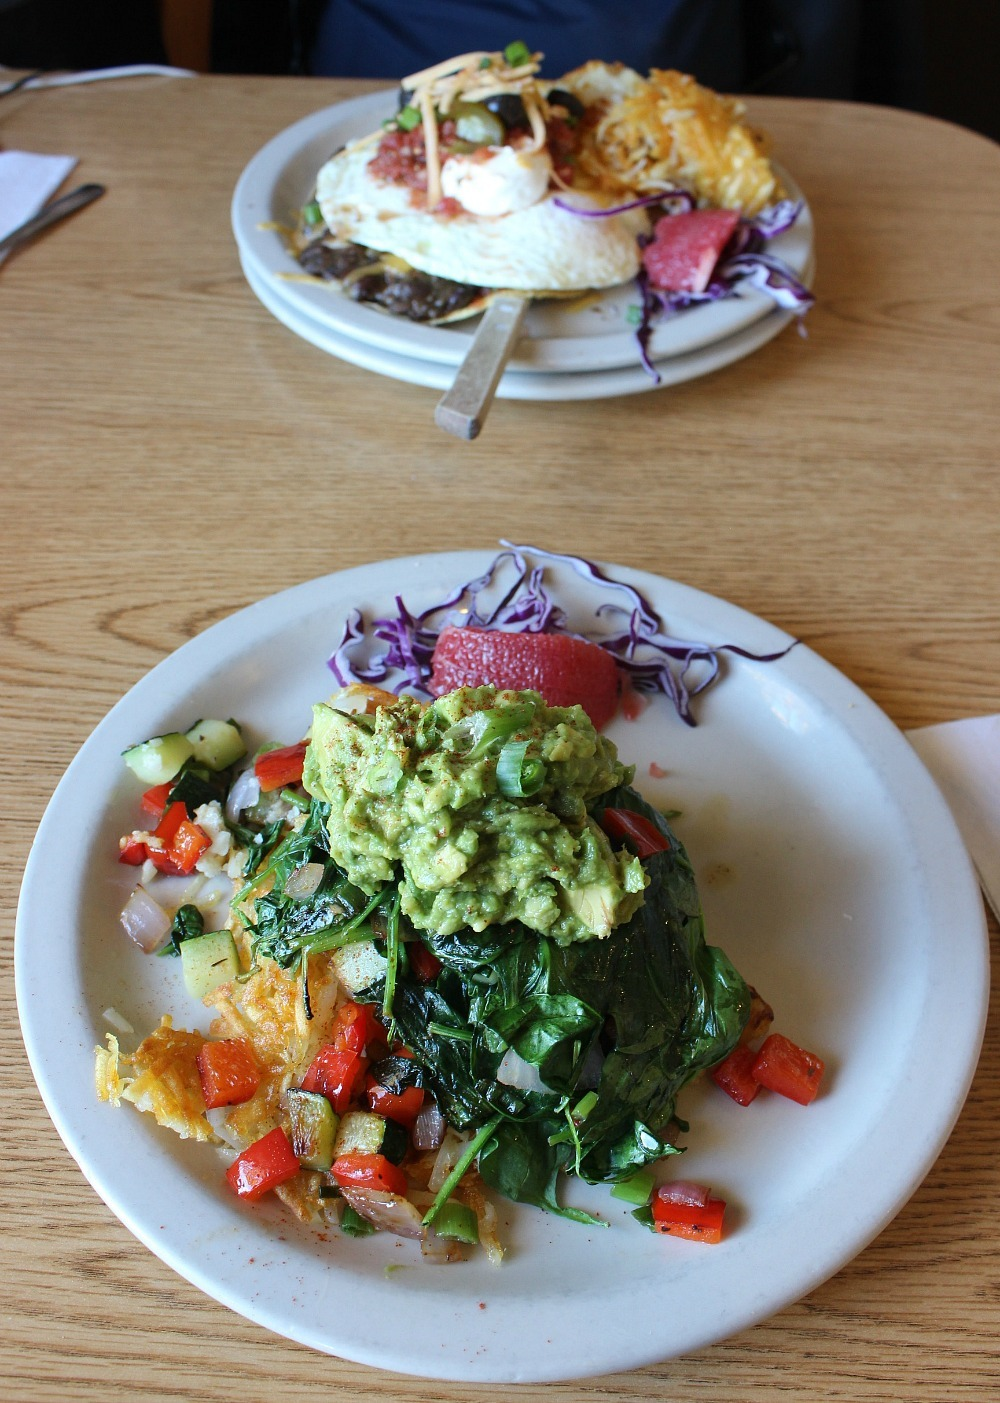 Eating vegetarian is a great way to save money for travel